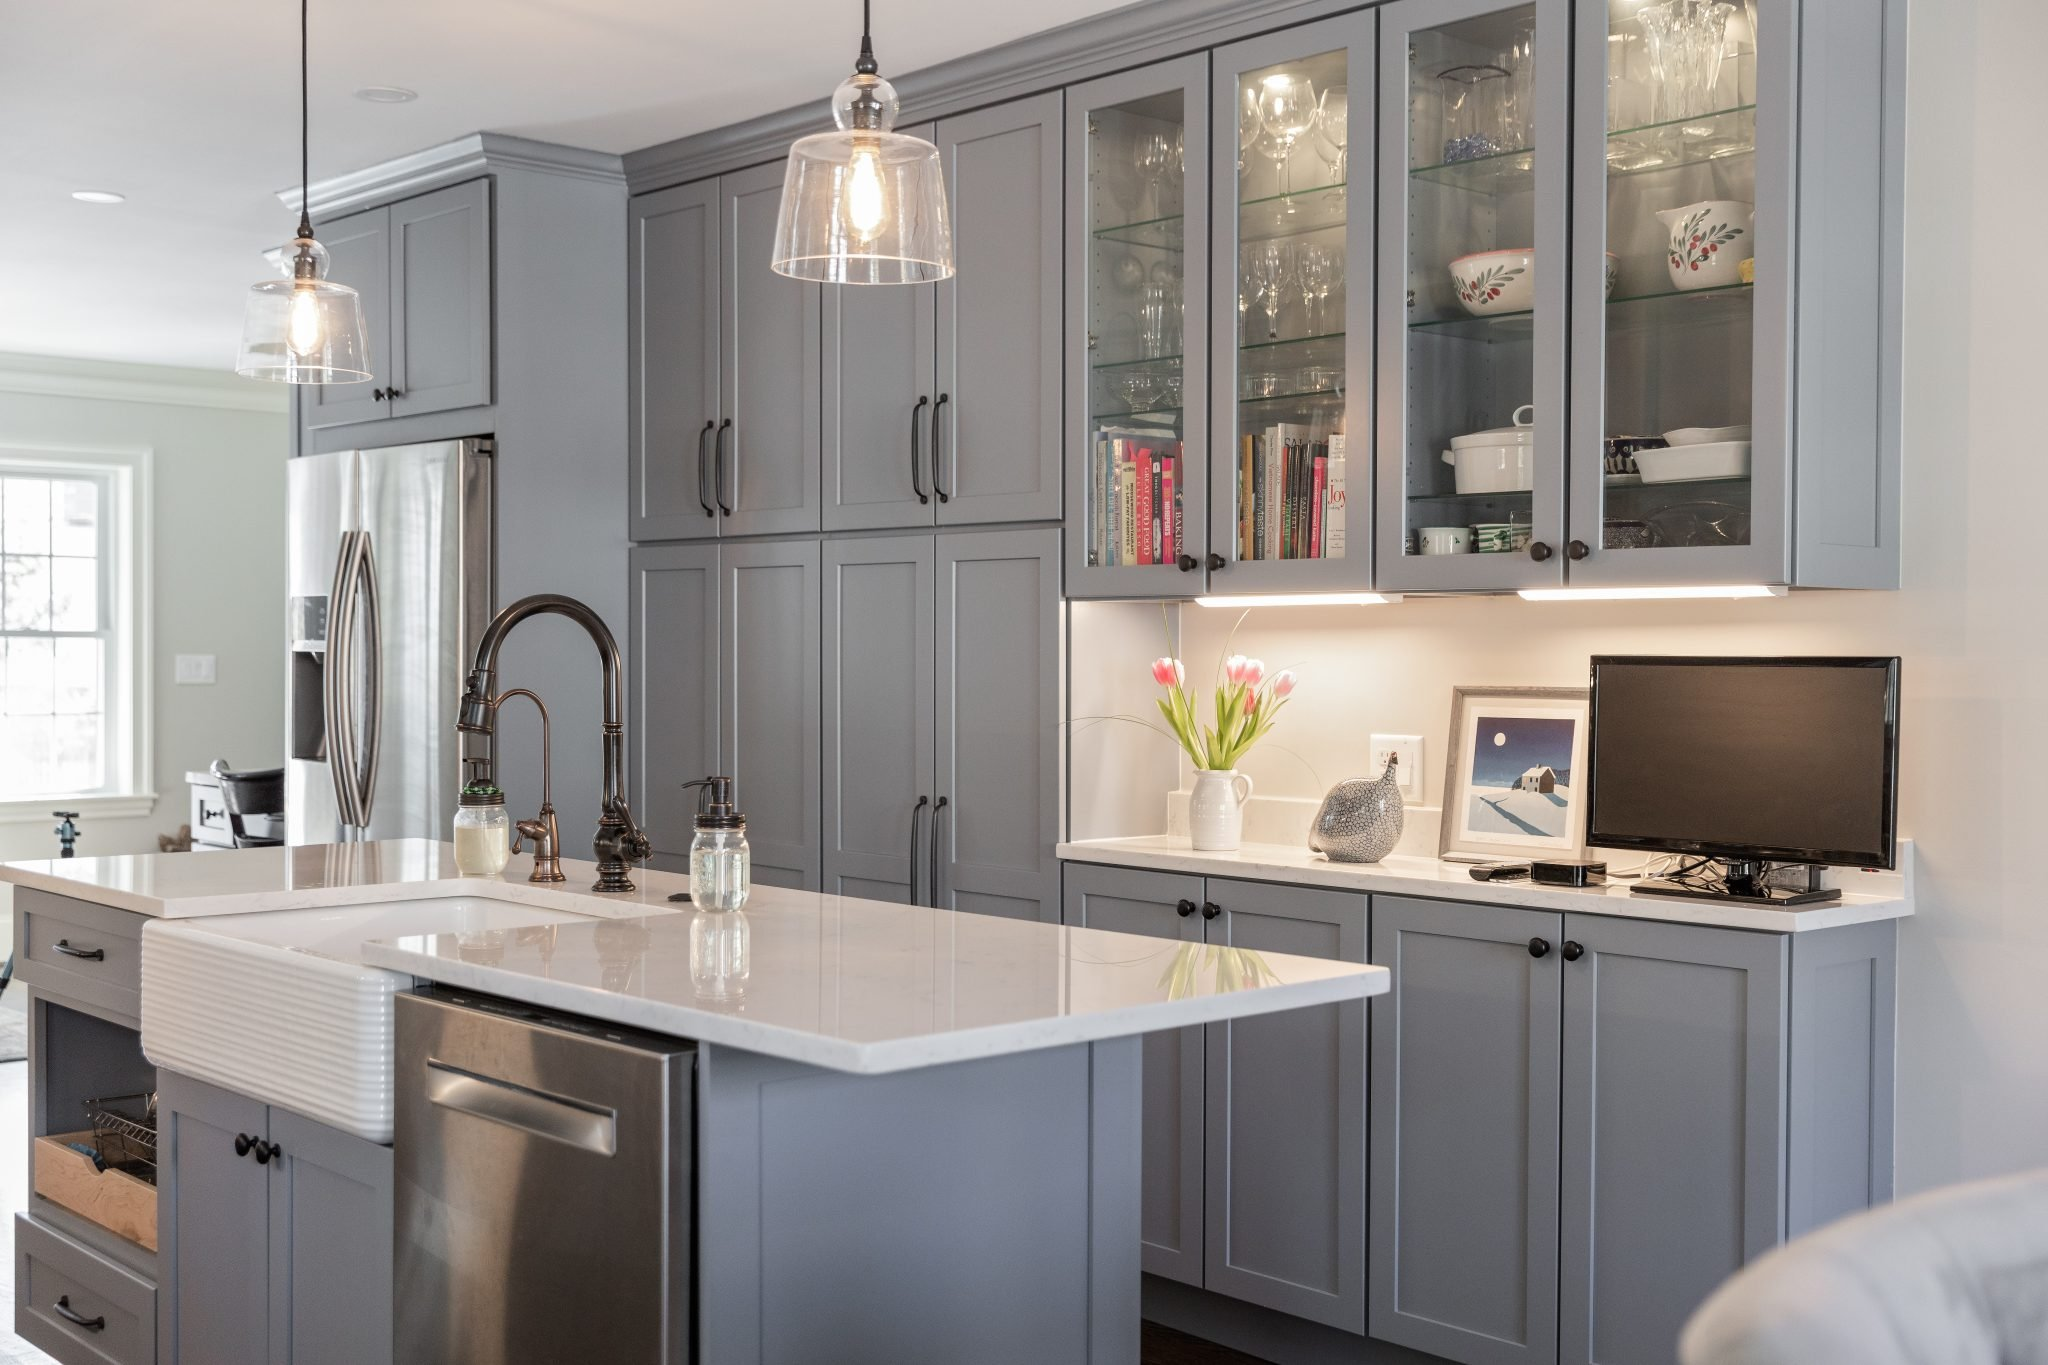 4 Custom Cabinet Storage Ideas For Your Kitchen